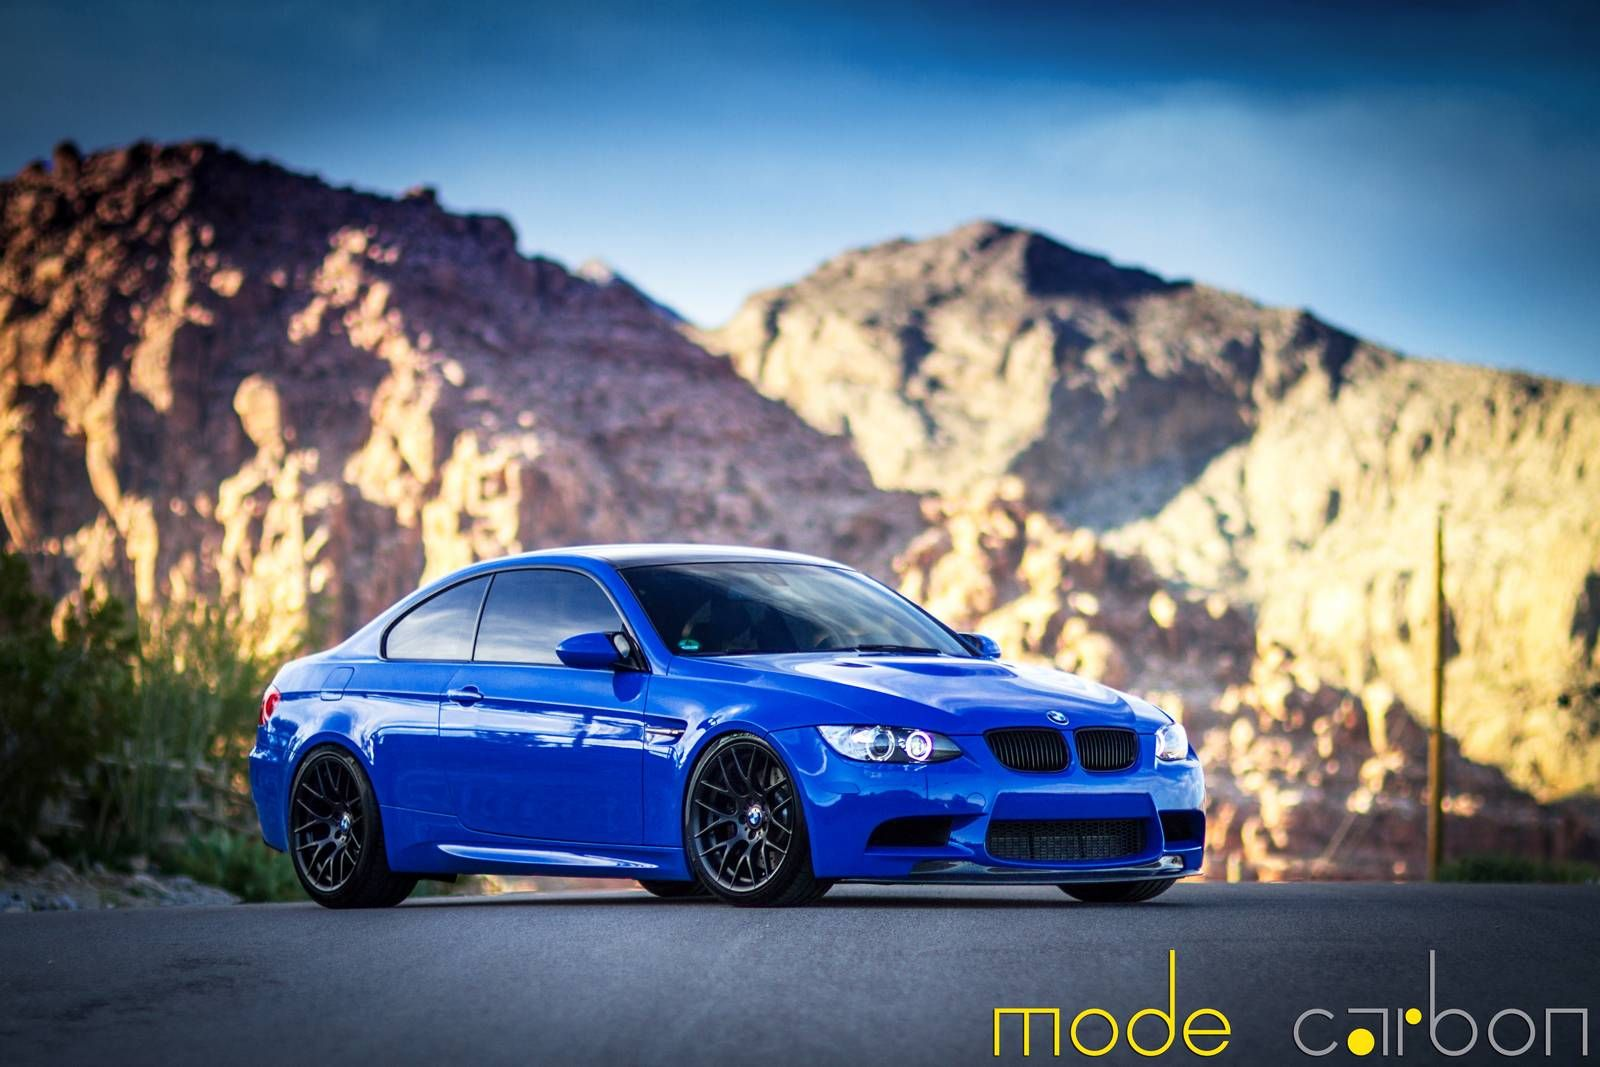 Santorini Blue Bmw E92 M3 By Mode Carbon Bmw M3 Bmw Bmw 4 Series